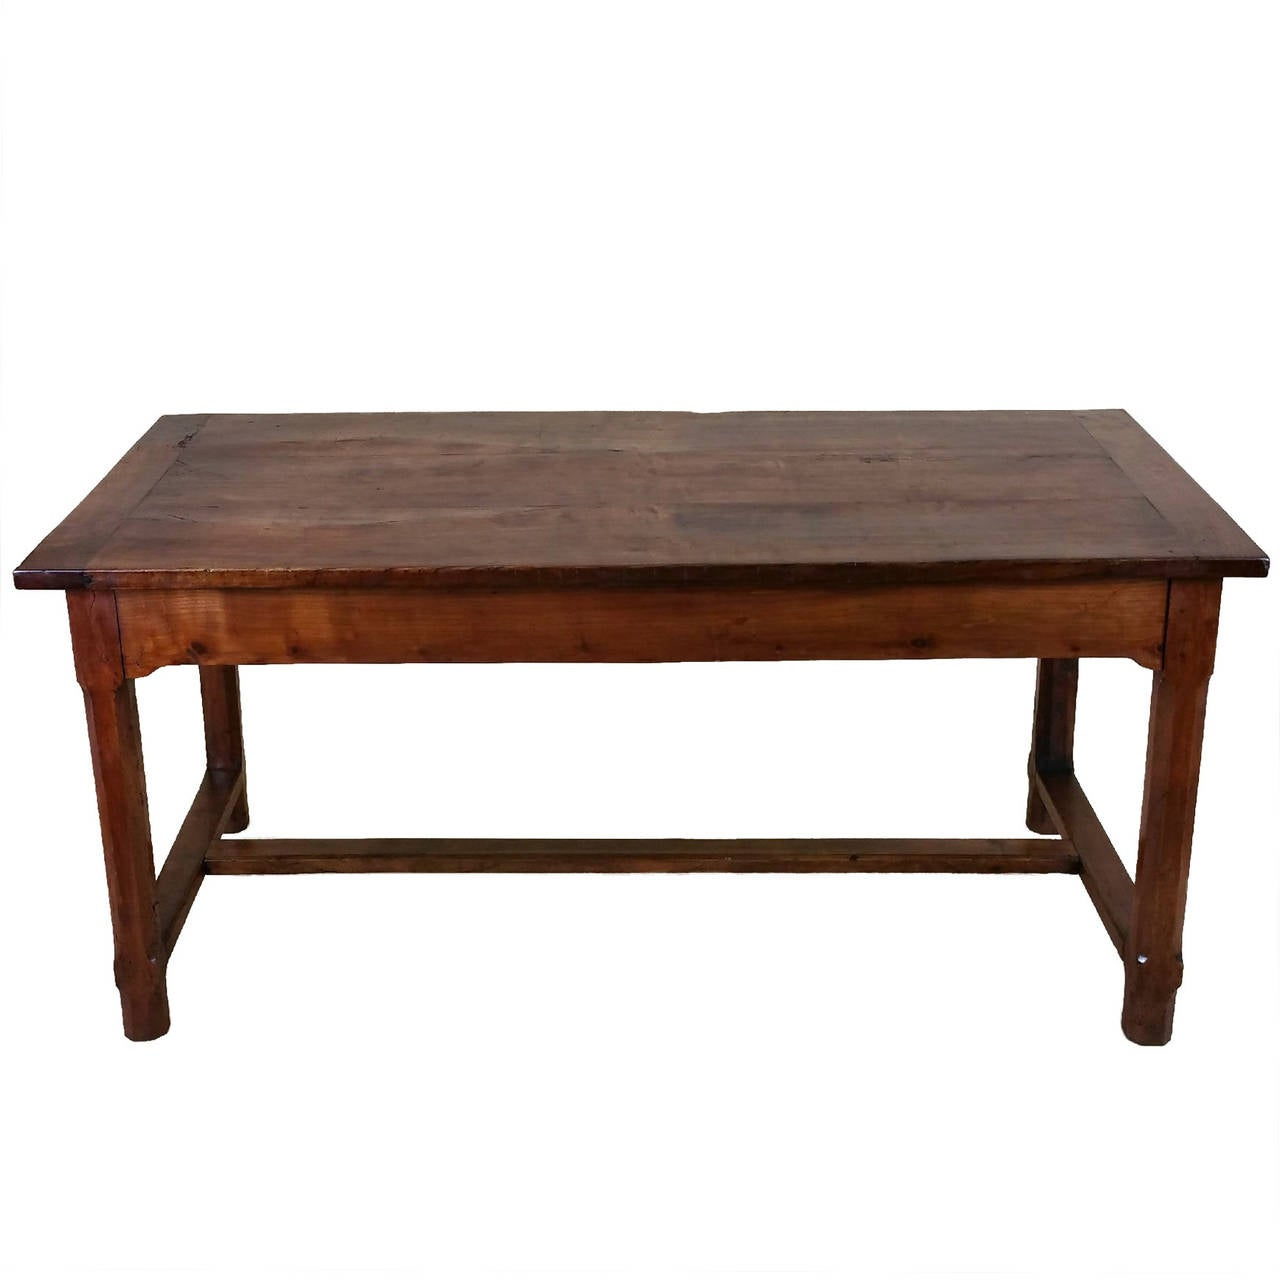 Early 19th Century French Cherrywood Farm House Table 1